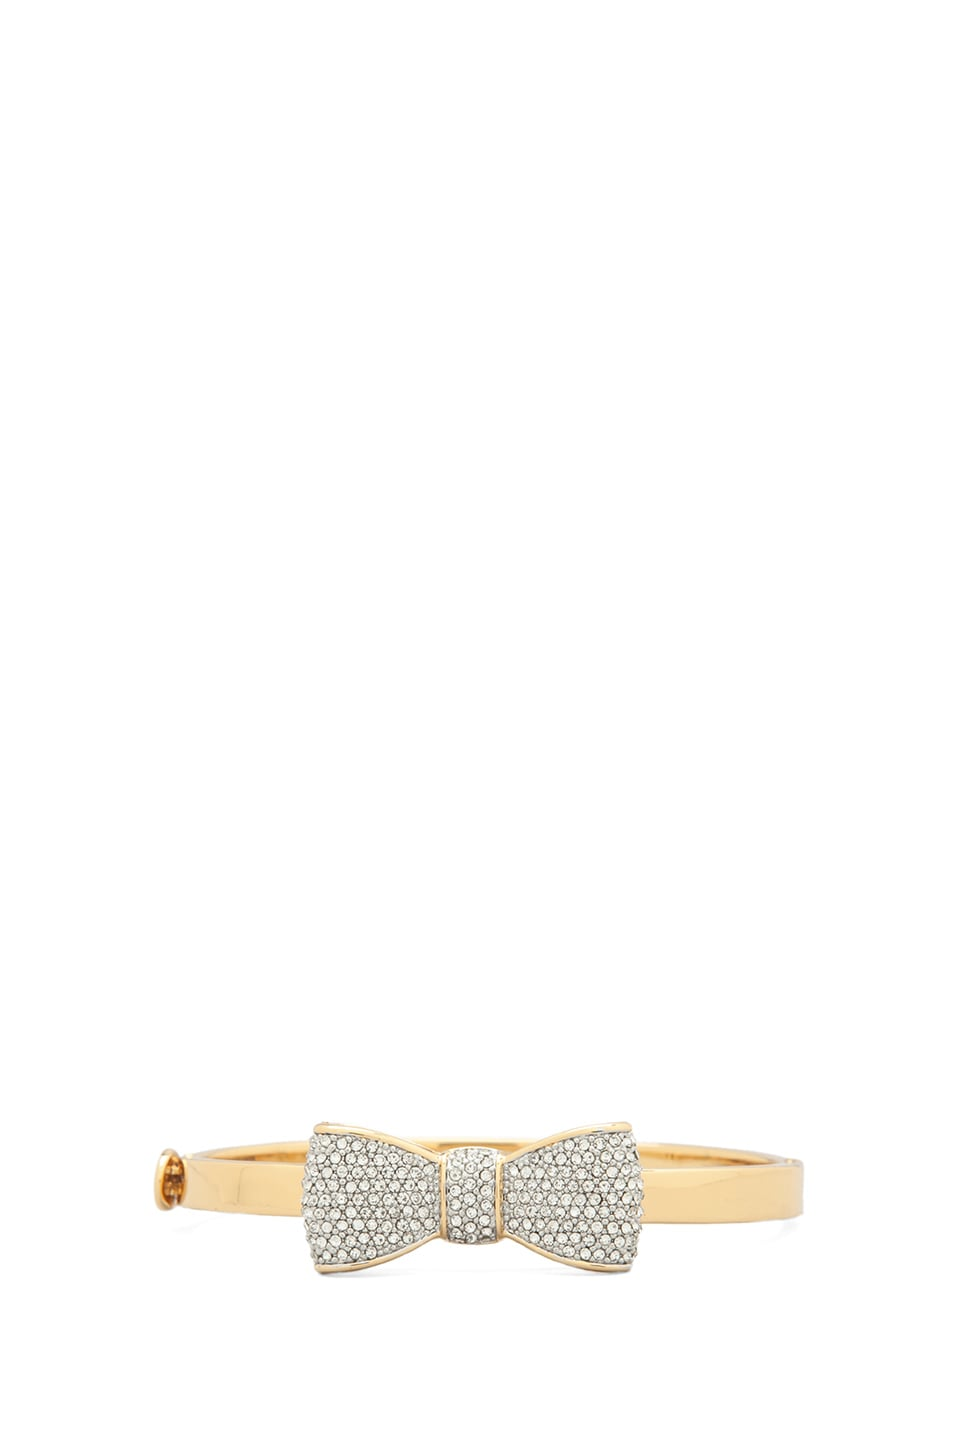 Juicy Couture Pave Bow Hinge Bangle in Gold